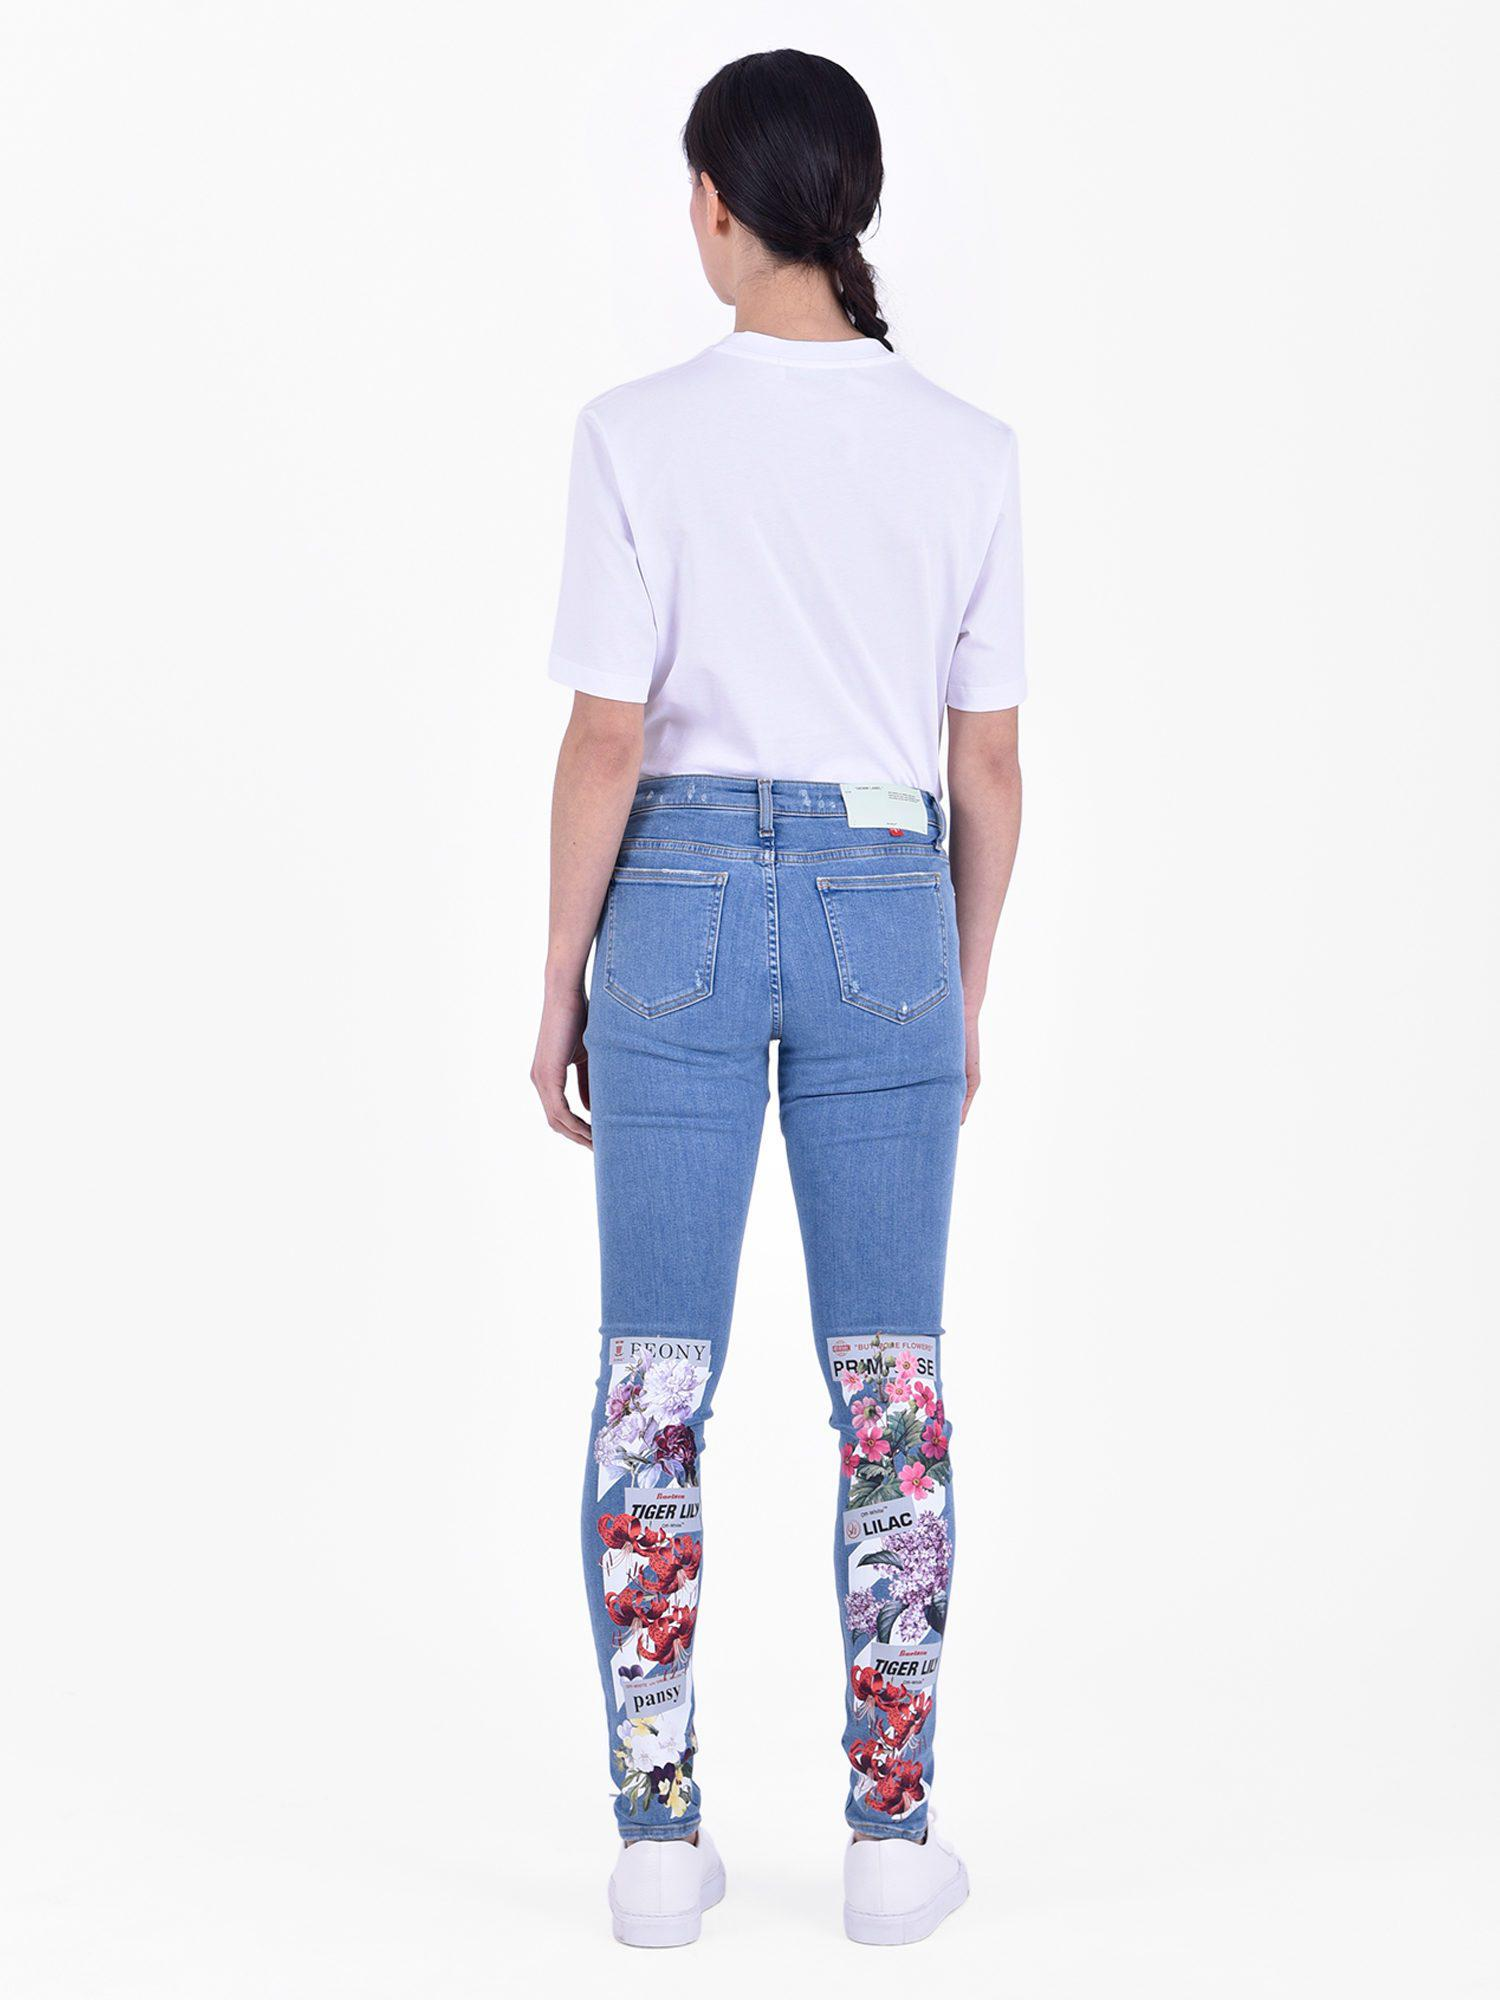 8d0d3fd9c096 Off-White C O Virgil Abloh Printed Stretch Jeans in Blue for Men - Save  39.8936170212766% - Lyst